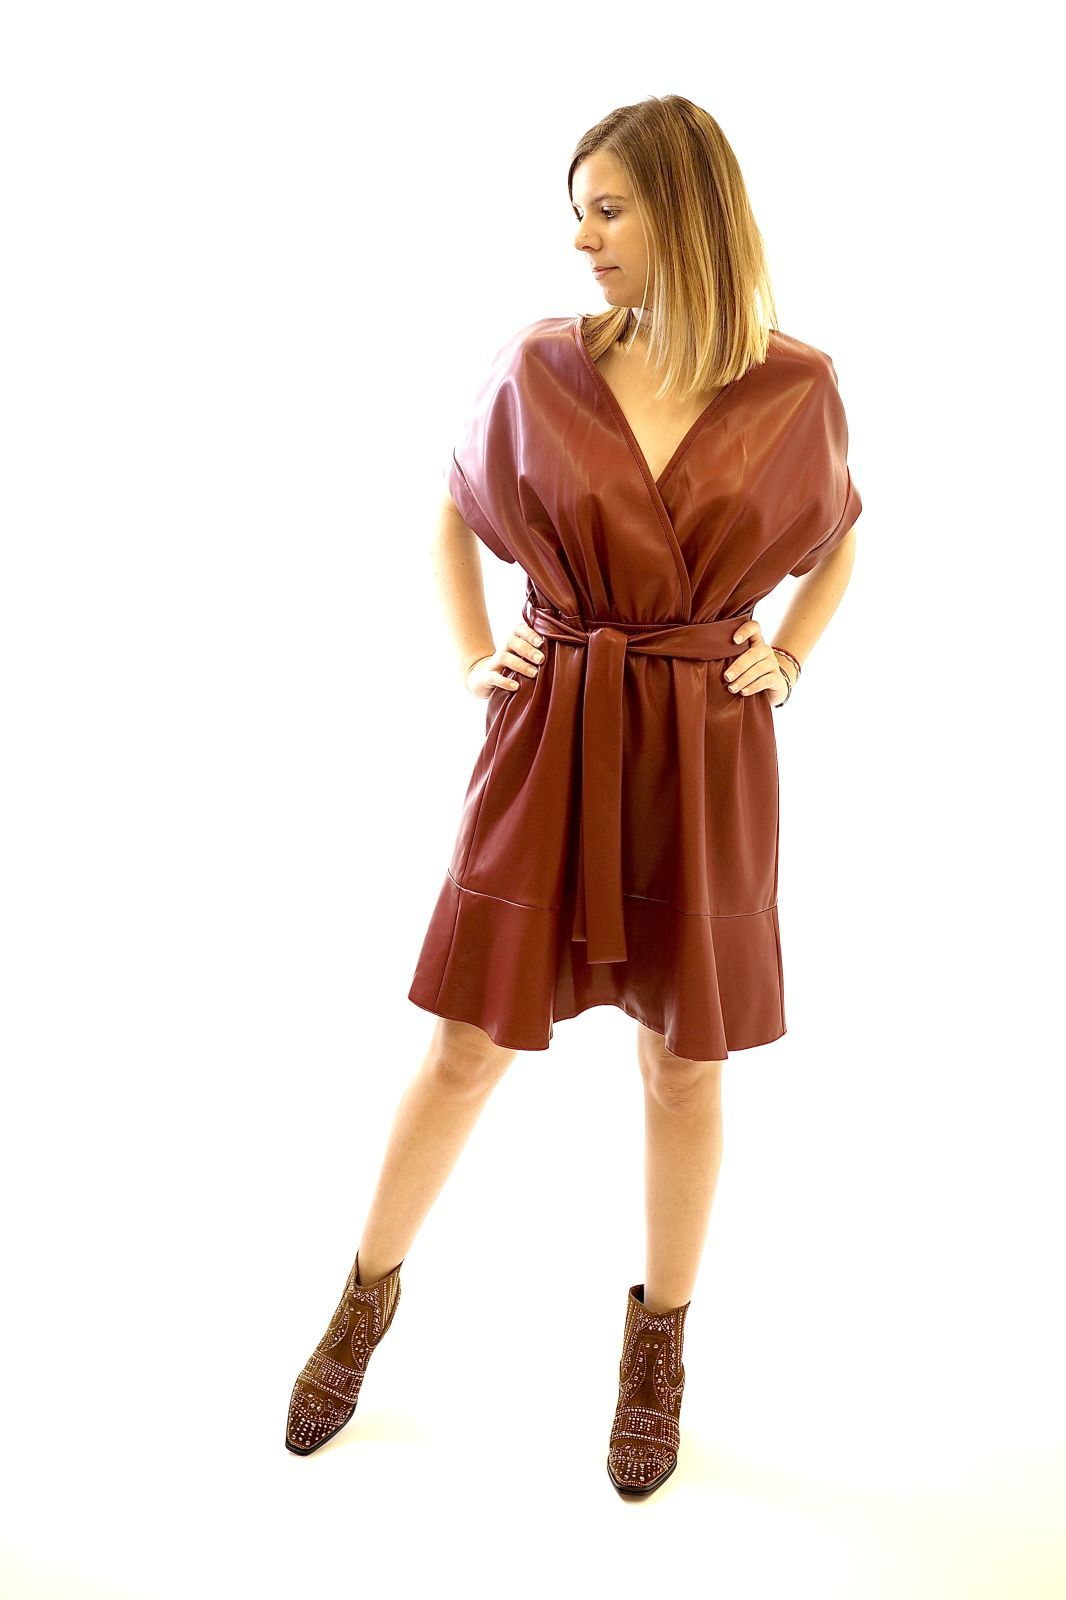 Sylvian Heach robe Bordeau femmes (SylvianH-Robe Fake Leather - BLOWOUT Robe bordeau) - Marine | Much more than shoes